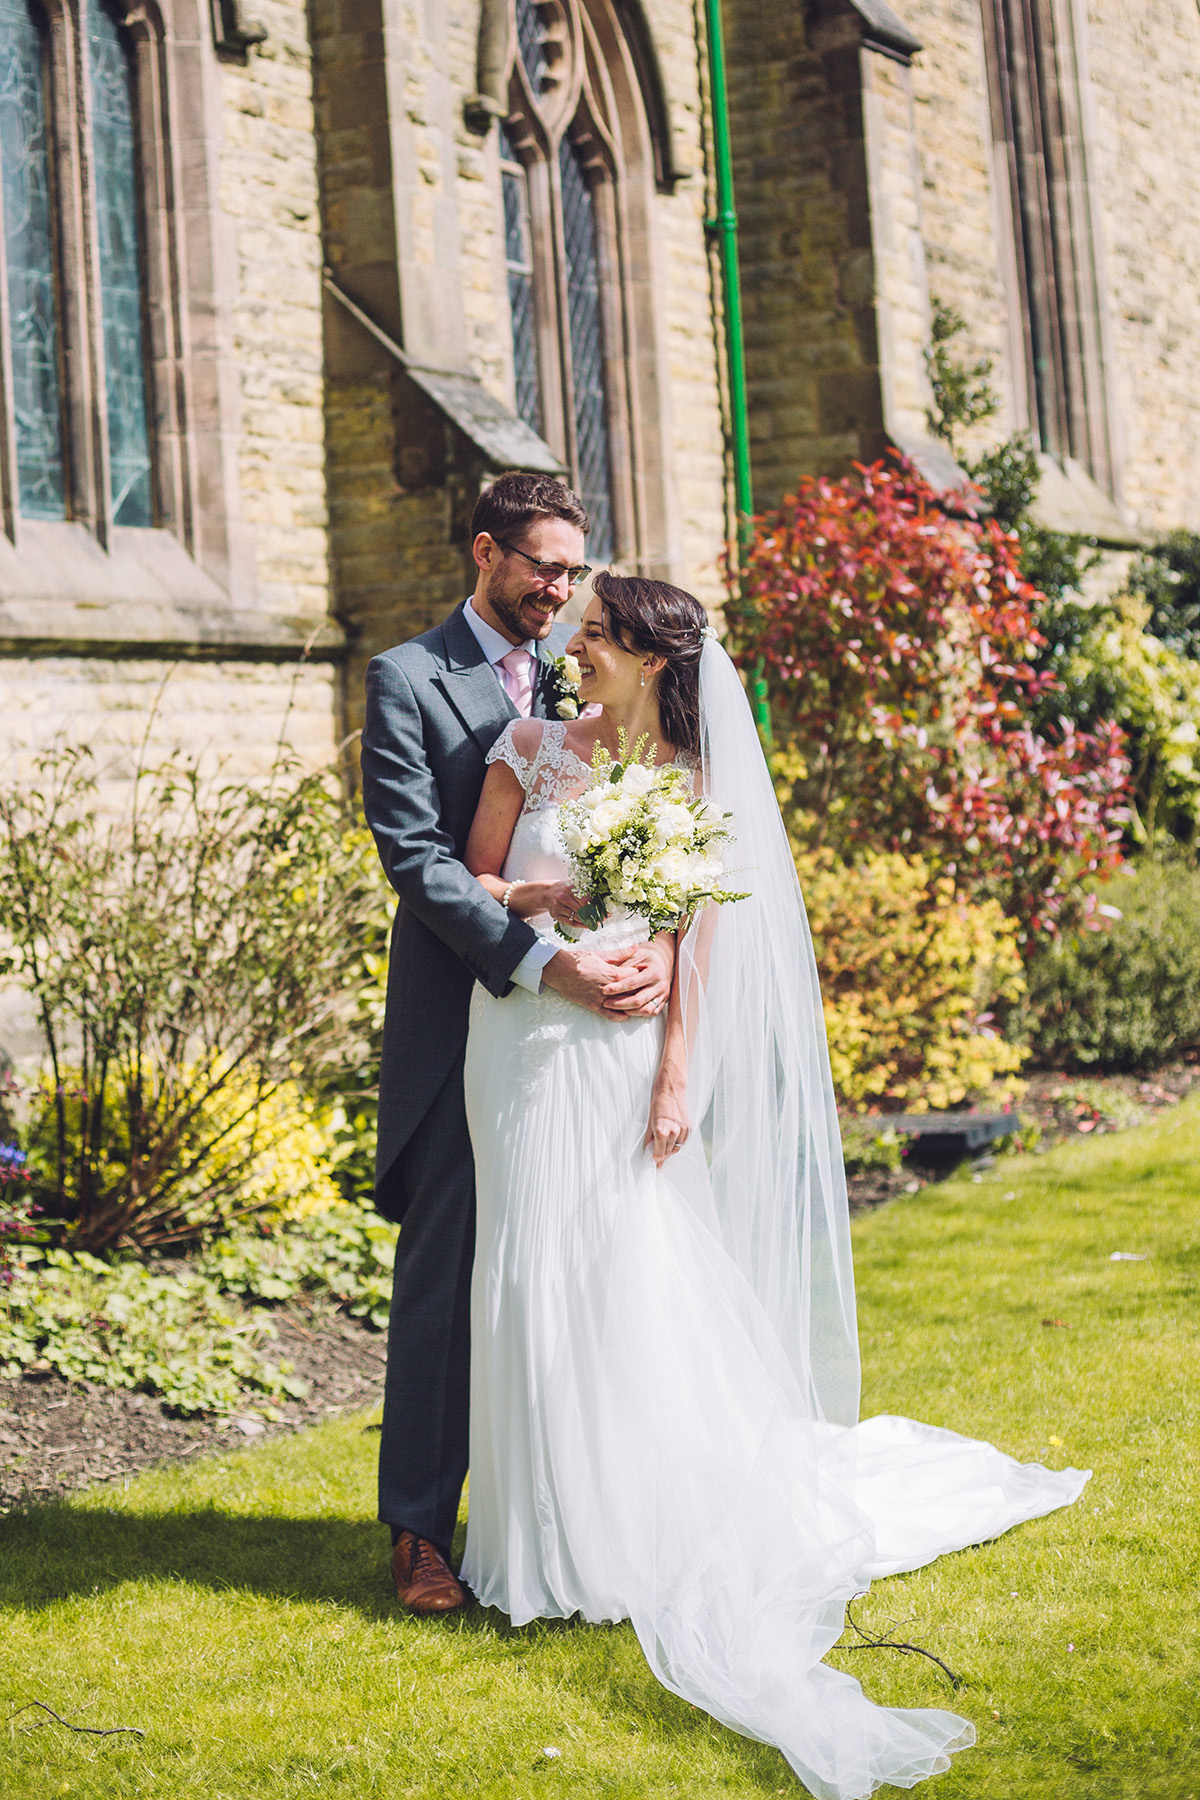 Bride and Groom Photography Shoot Wedding Photography Manchester and Cheshire Photographer